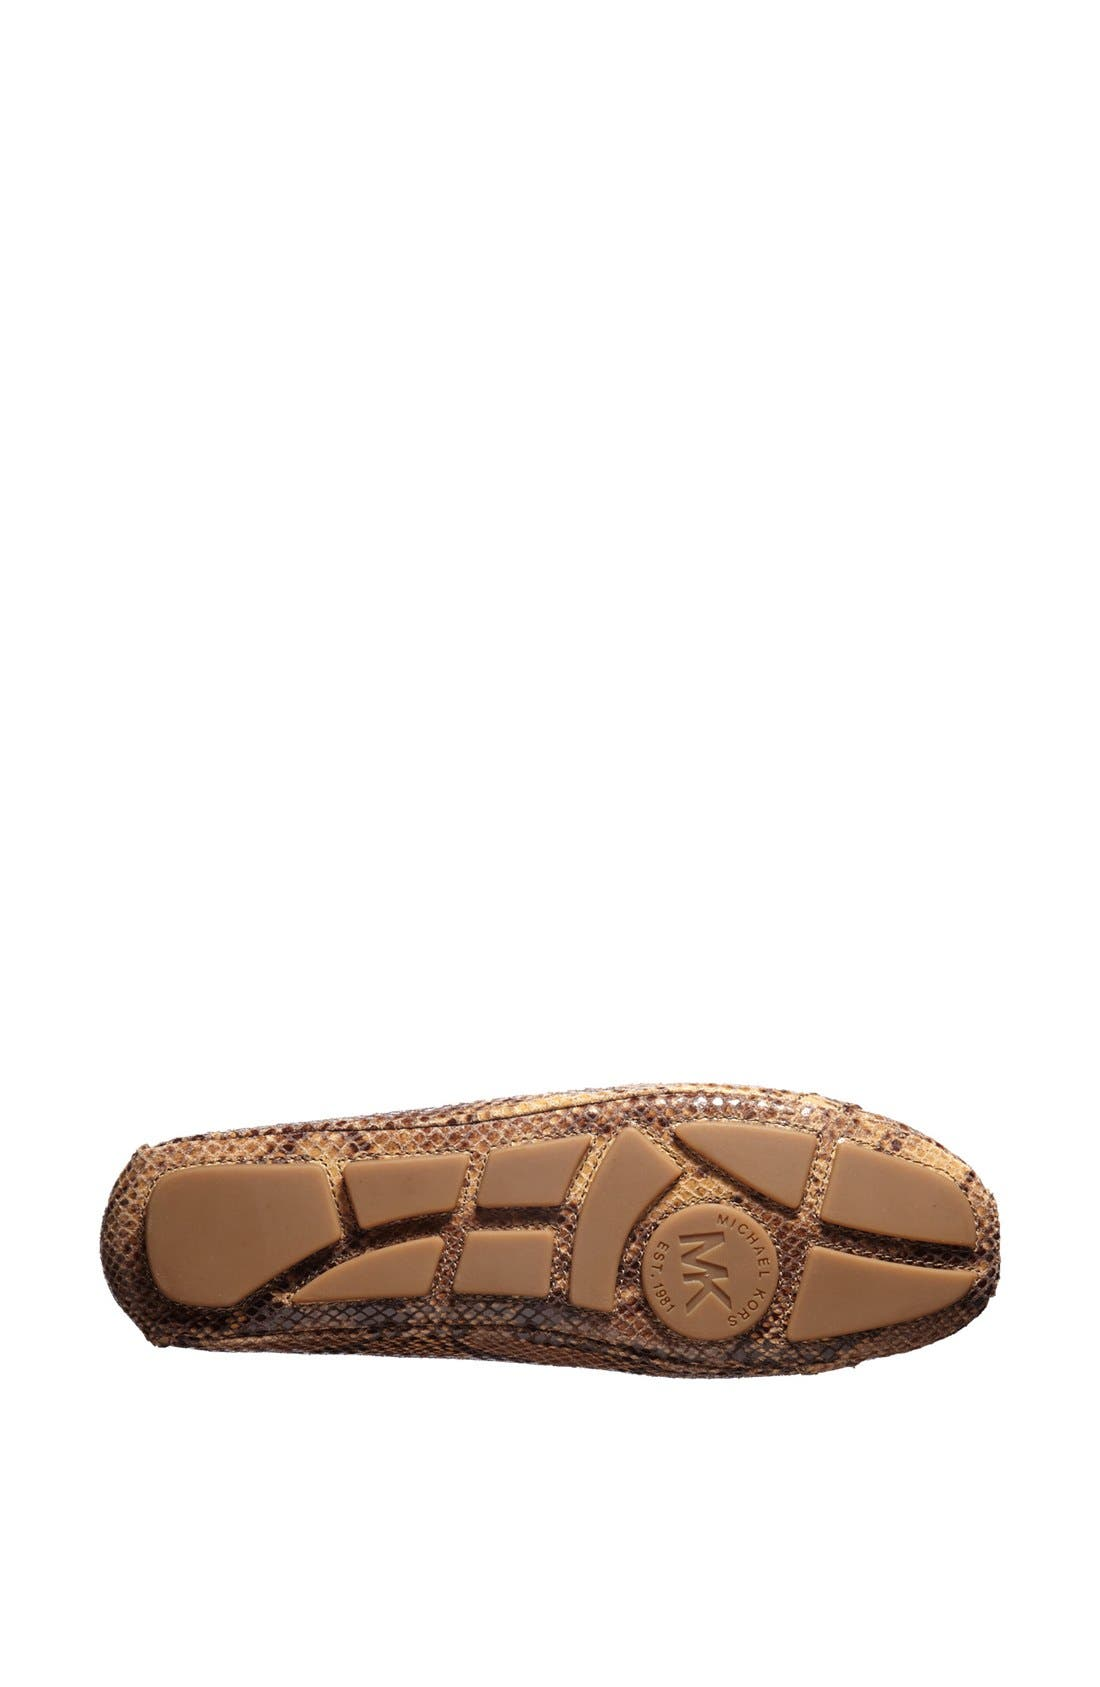 Alternate Image 4  - MICHAEL Michael Kors 'Fulton' Moccasin (Women)